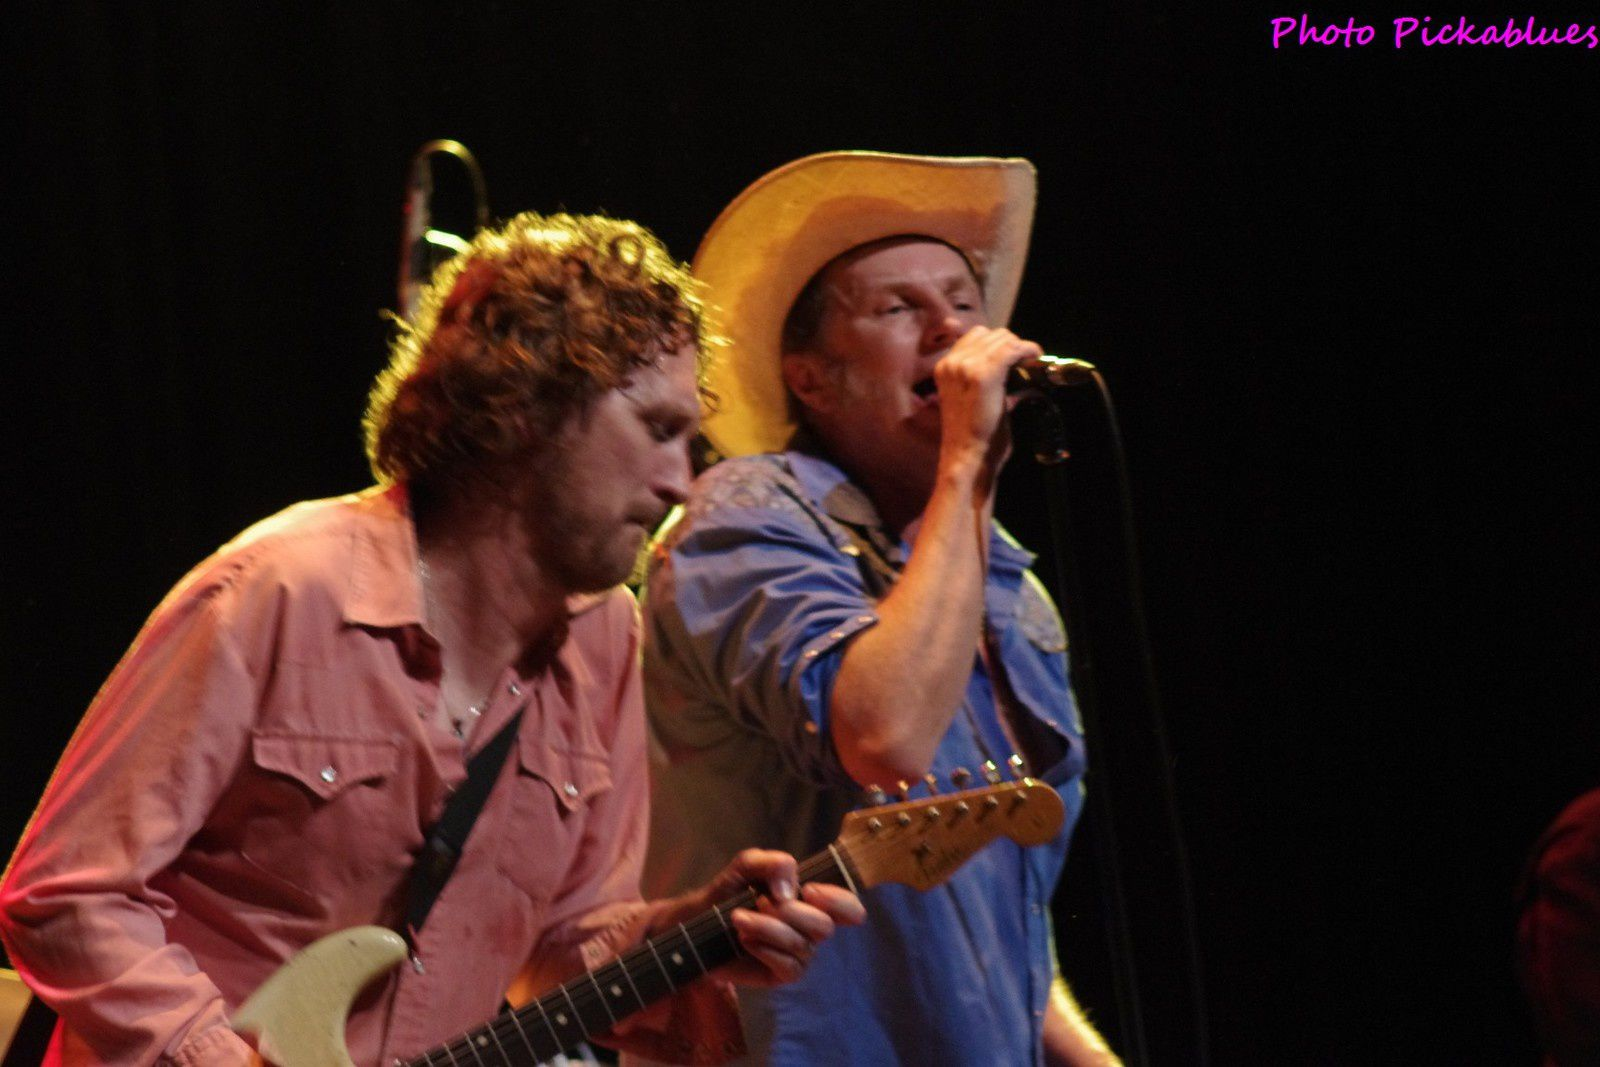 Johnny Moeller & Mike Barfield & The Ozdemirs - 12/02/2016 - Seven Nights to Blues, St André lez Lille (59)